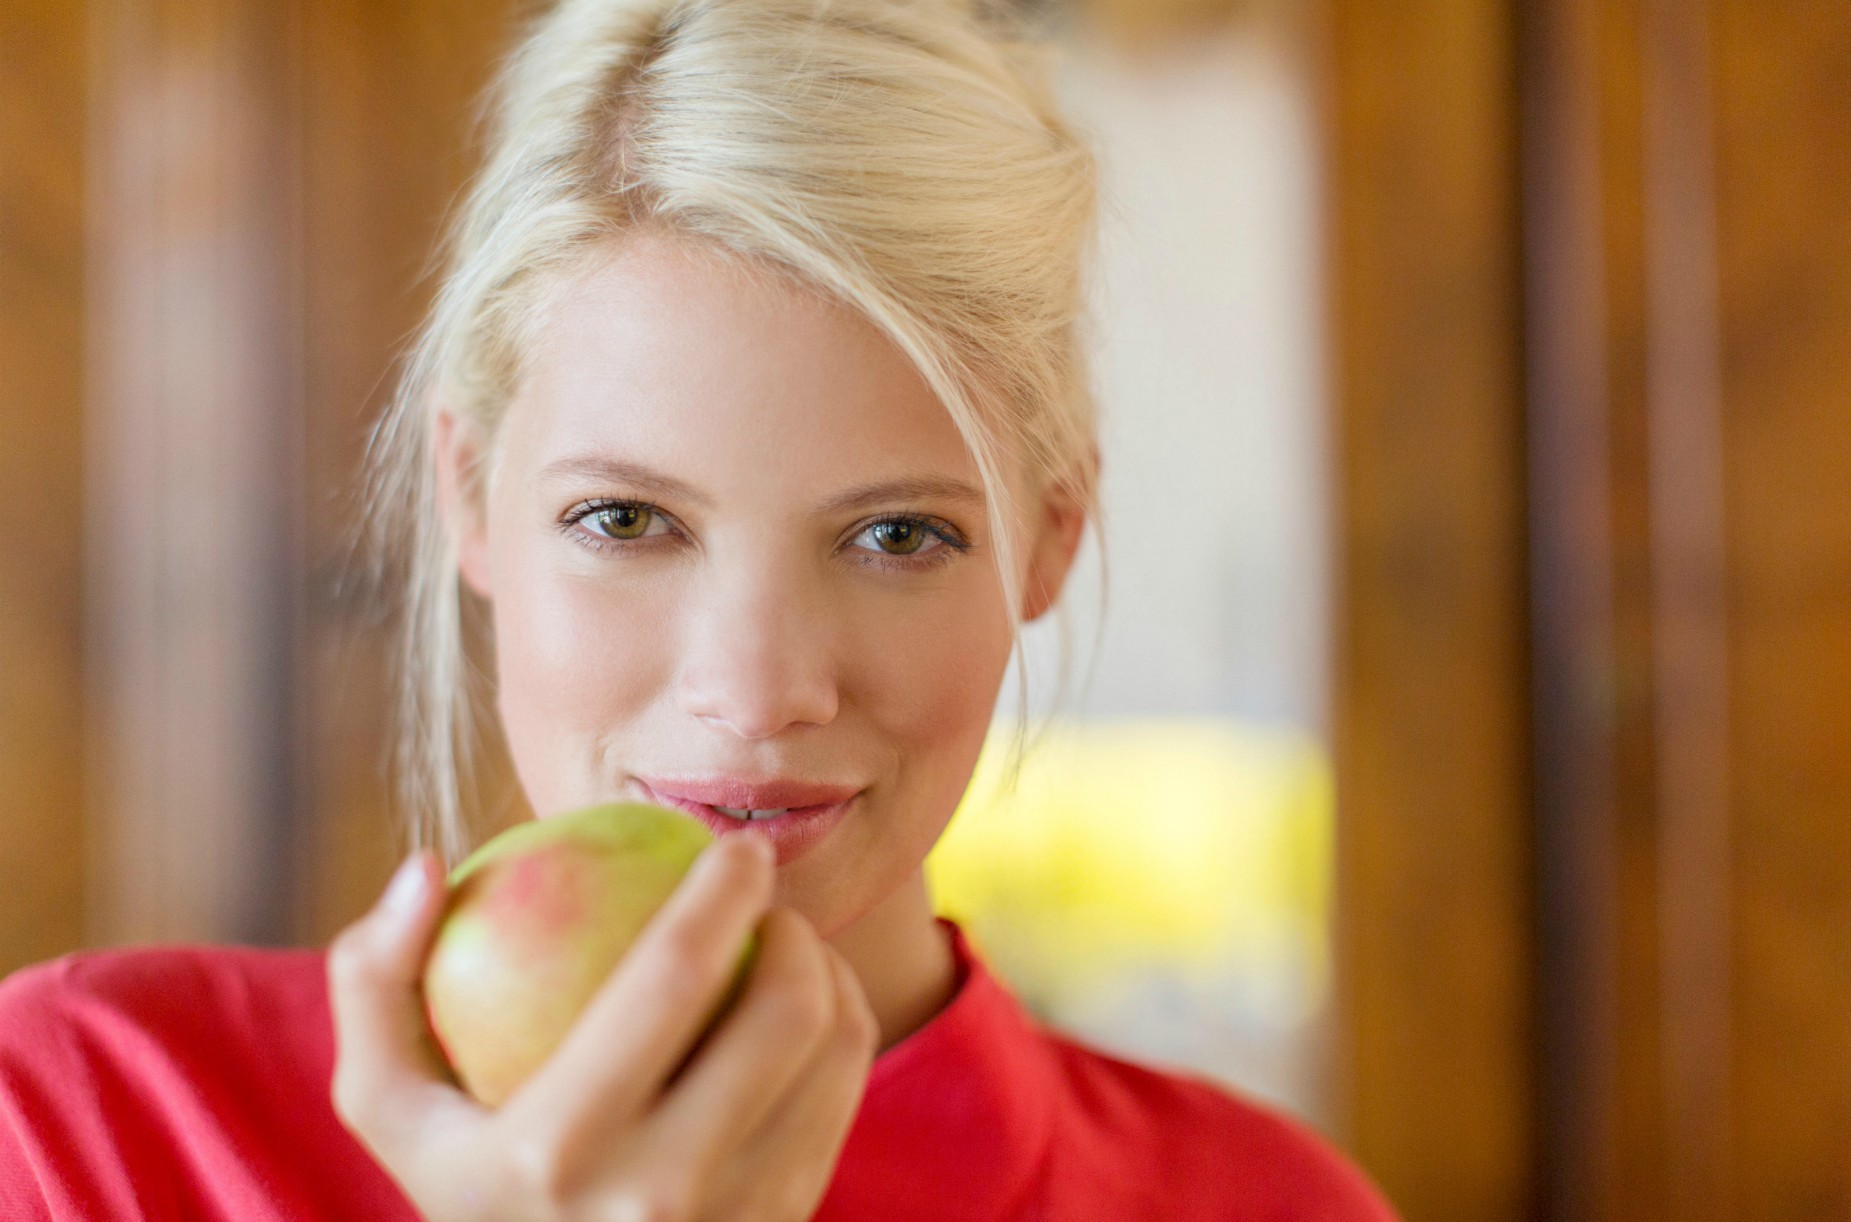 eating apples for a week to lose weight